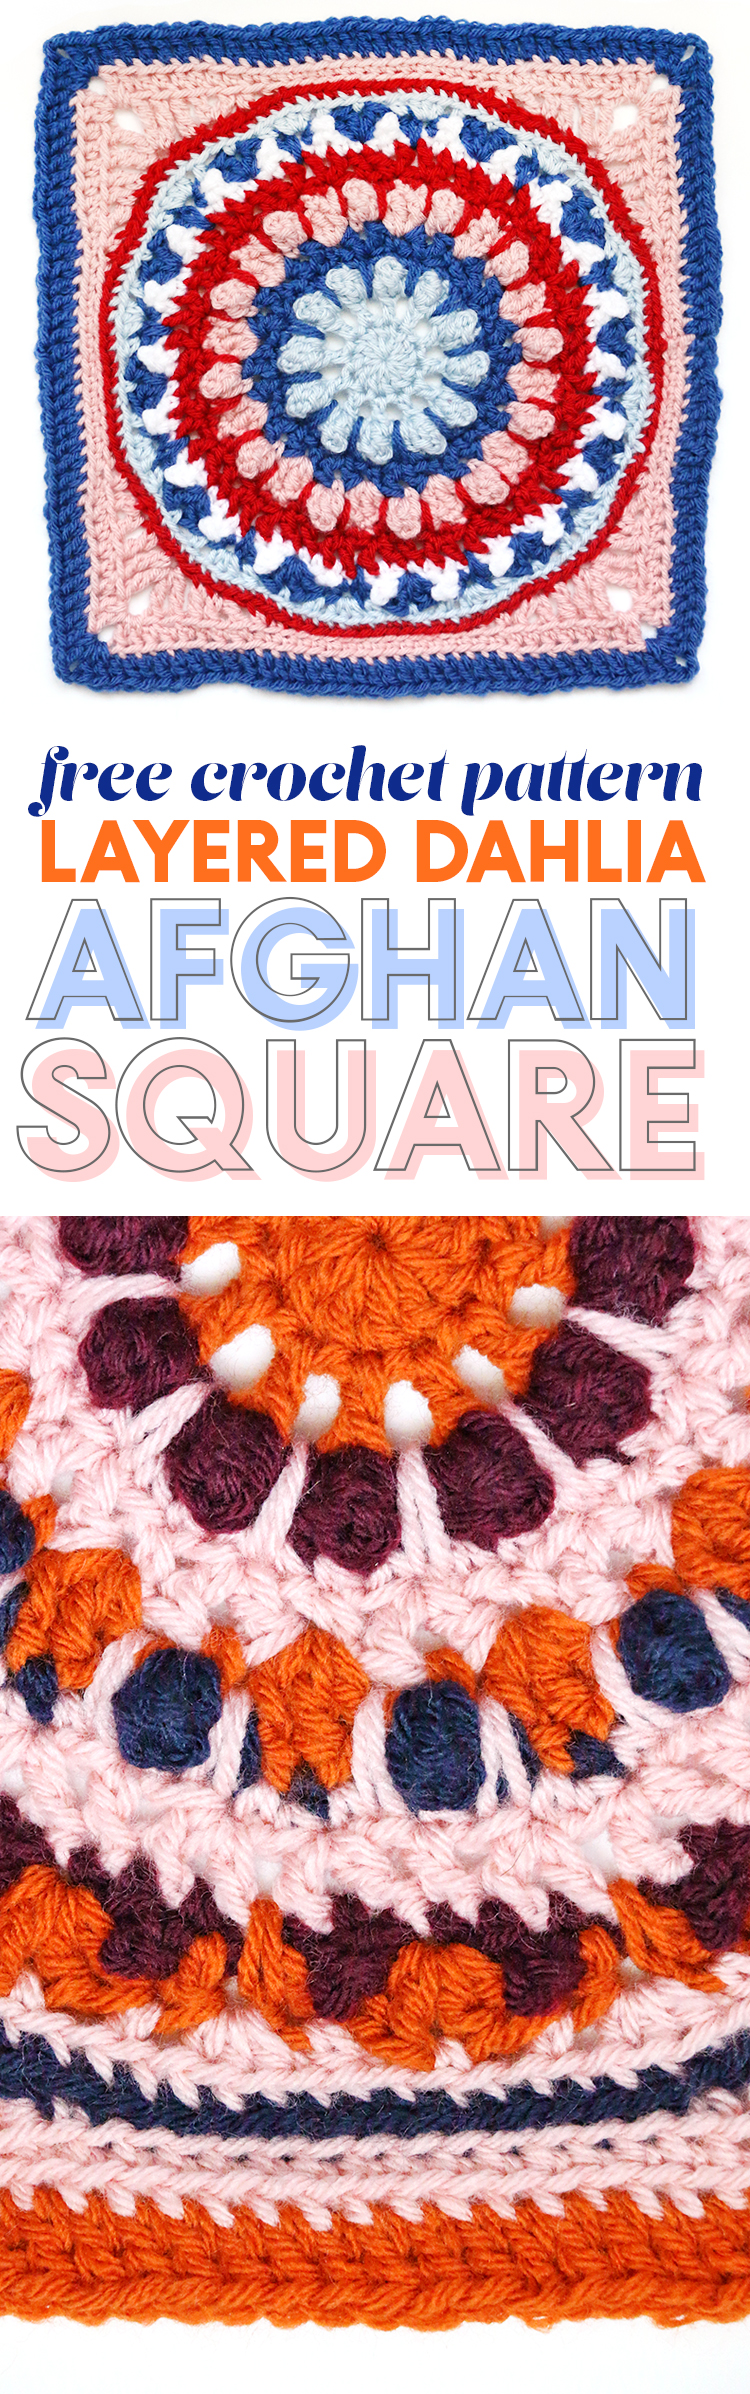 the layered dahlia free 12 inch afghan square pattern from persia lou - written pattern and photo tutorial